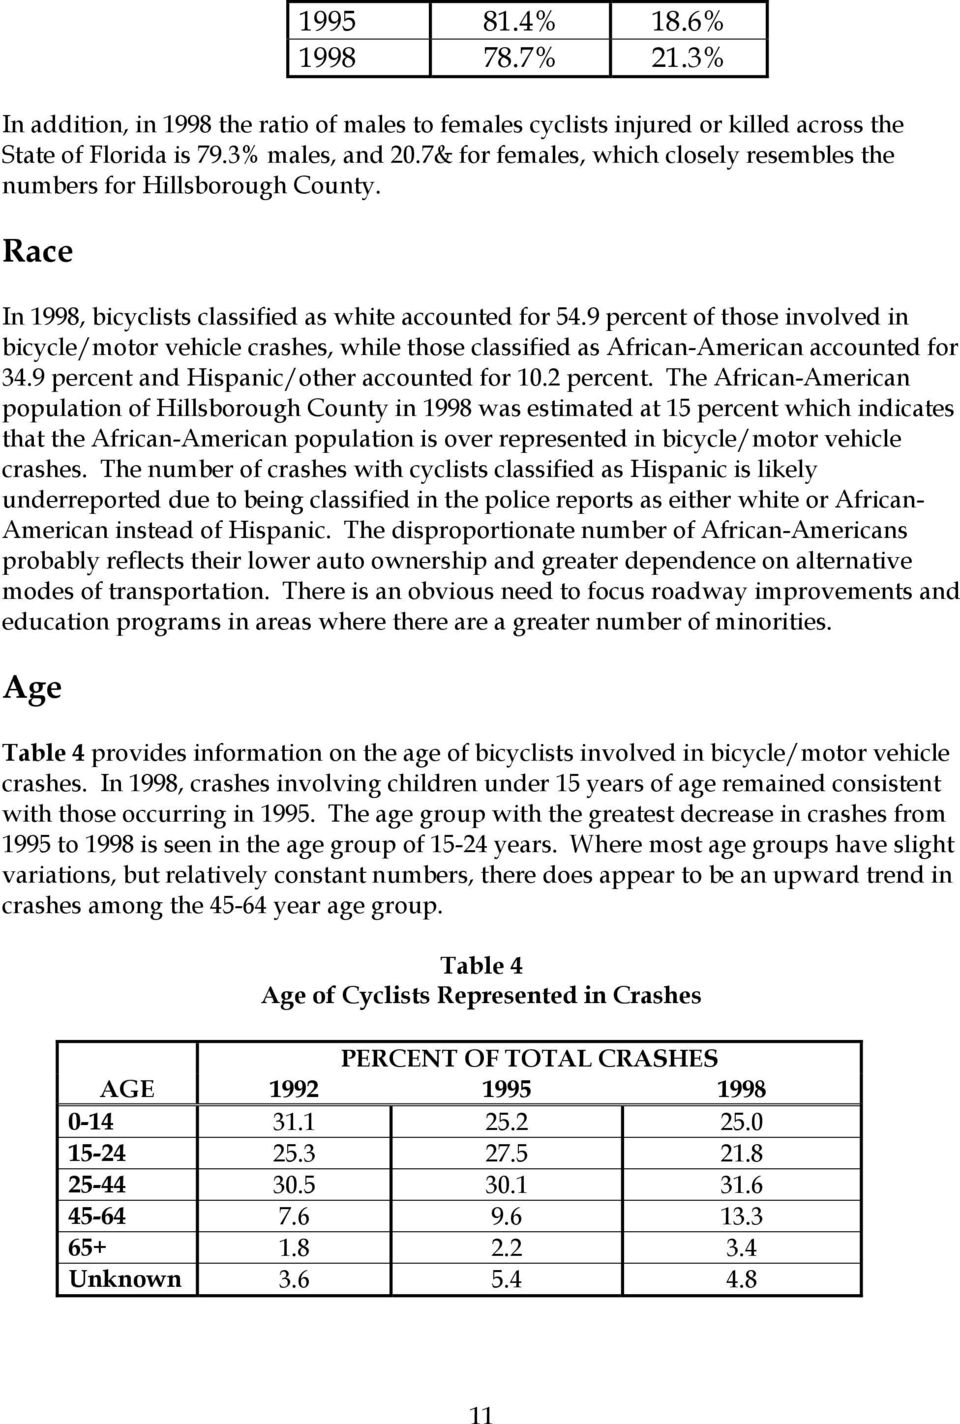 9 percent of those involved in bicycle/motor vehicle crashes, while those classified as African-American accounted for 34.9 percent and Hispanic/other accounted for 10.2 percent.